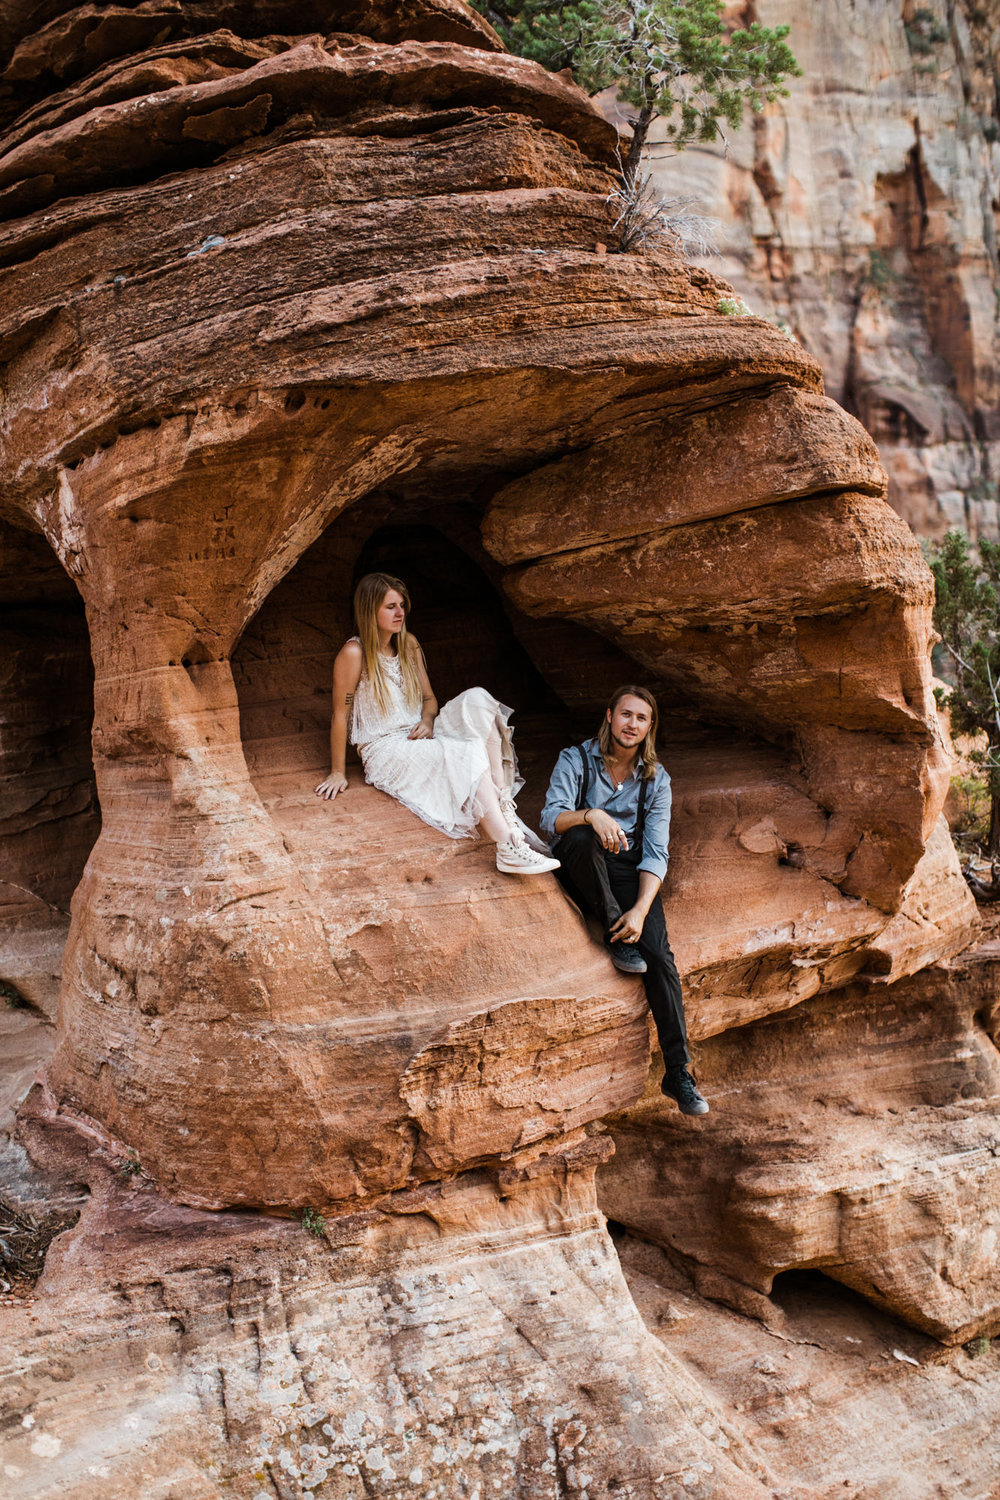 hiking elopement in zion national park | destination adventure wedding photographers | the hearnes adventure photography | www.thehearnes.com